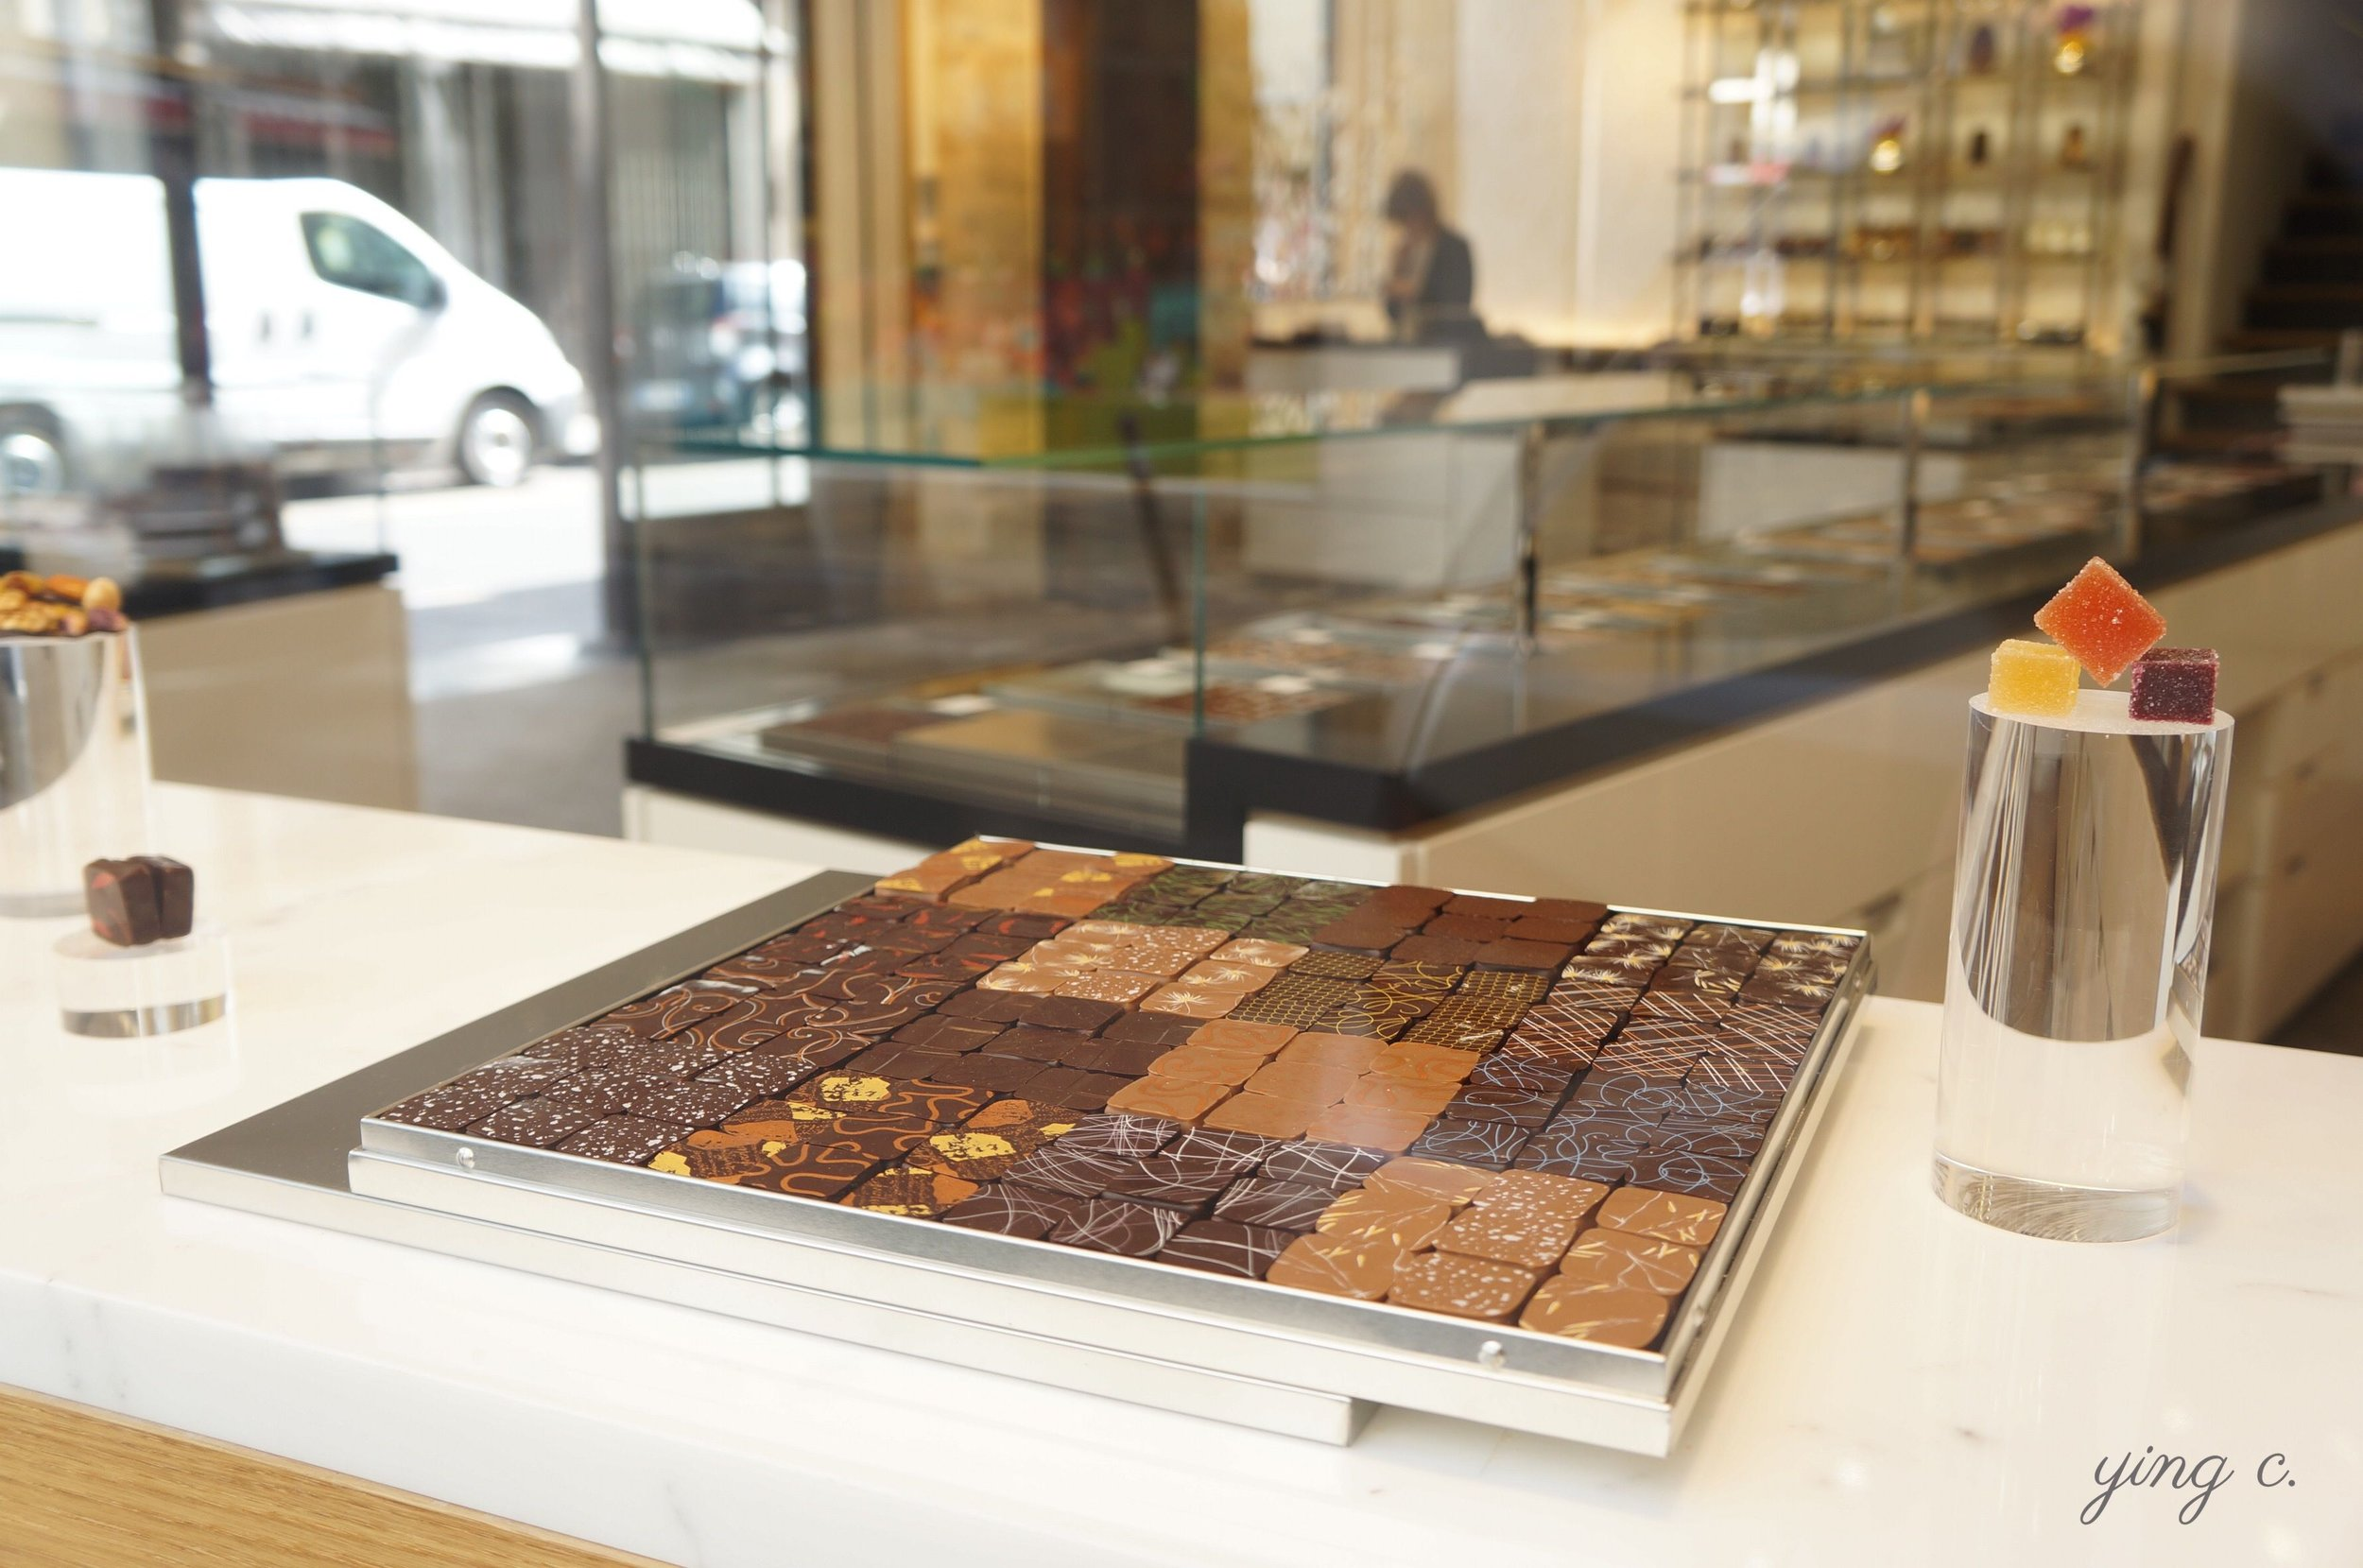 Jacques Génin's famous chocolates each filled with carefully crafted ganaches.  Jacques Génin出名的夾心巧克力,有各式各樣新奇細緻的口味。